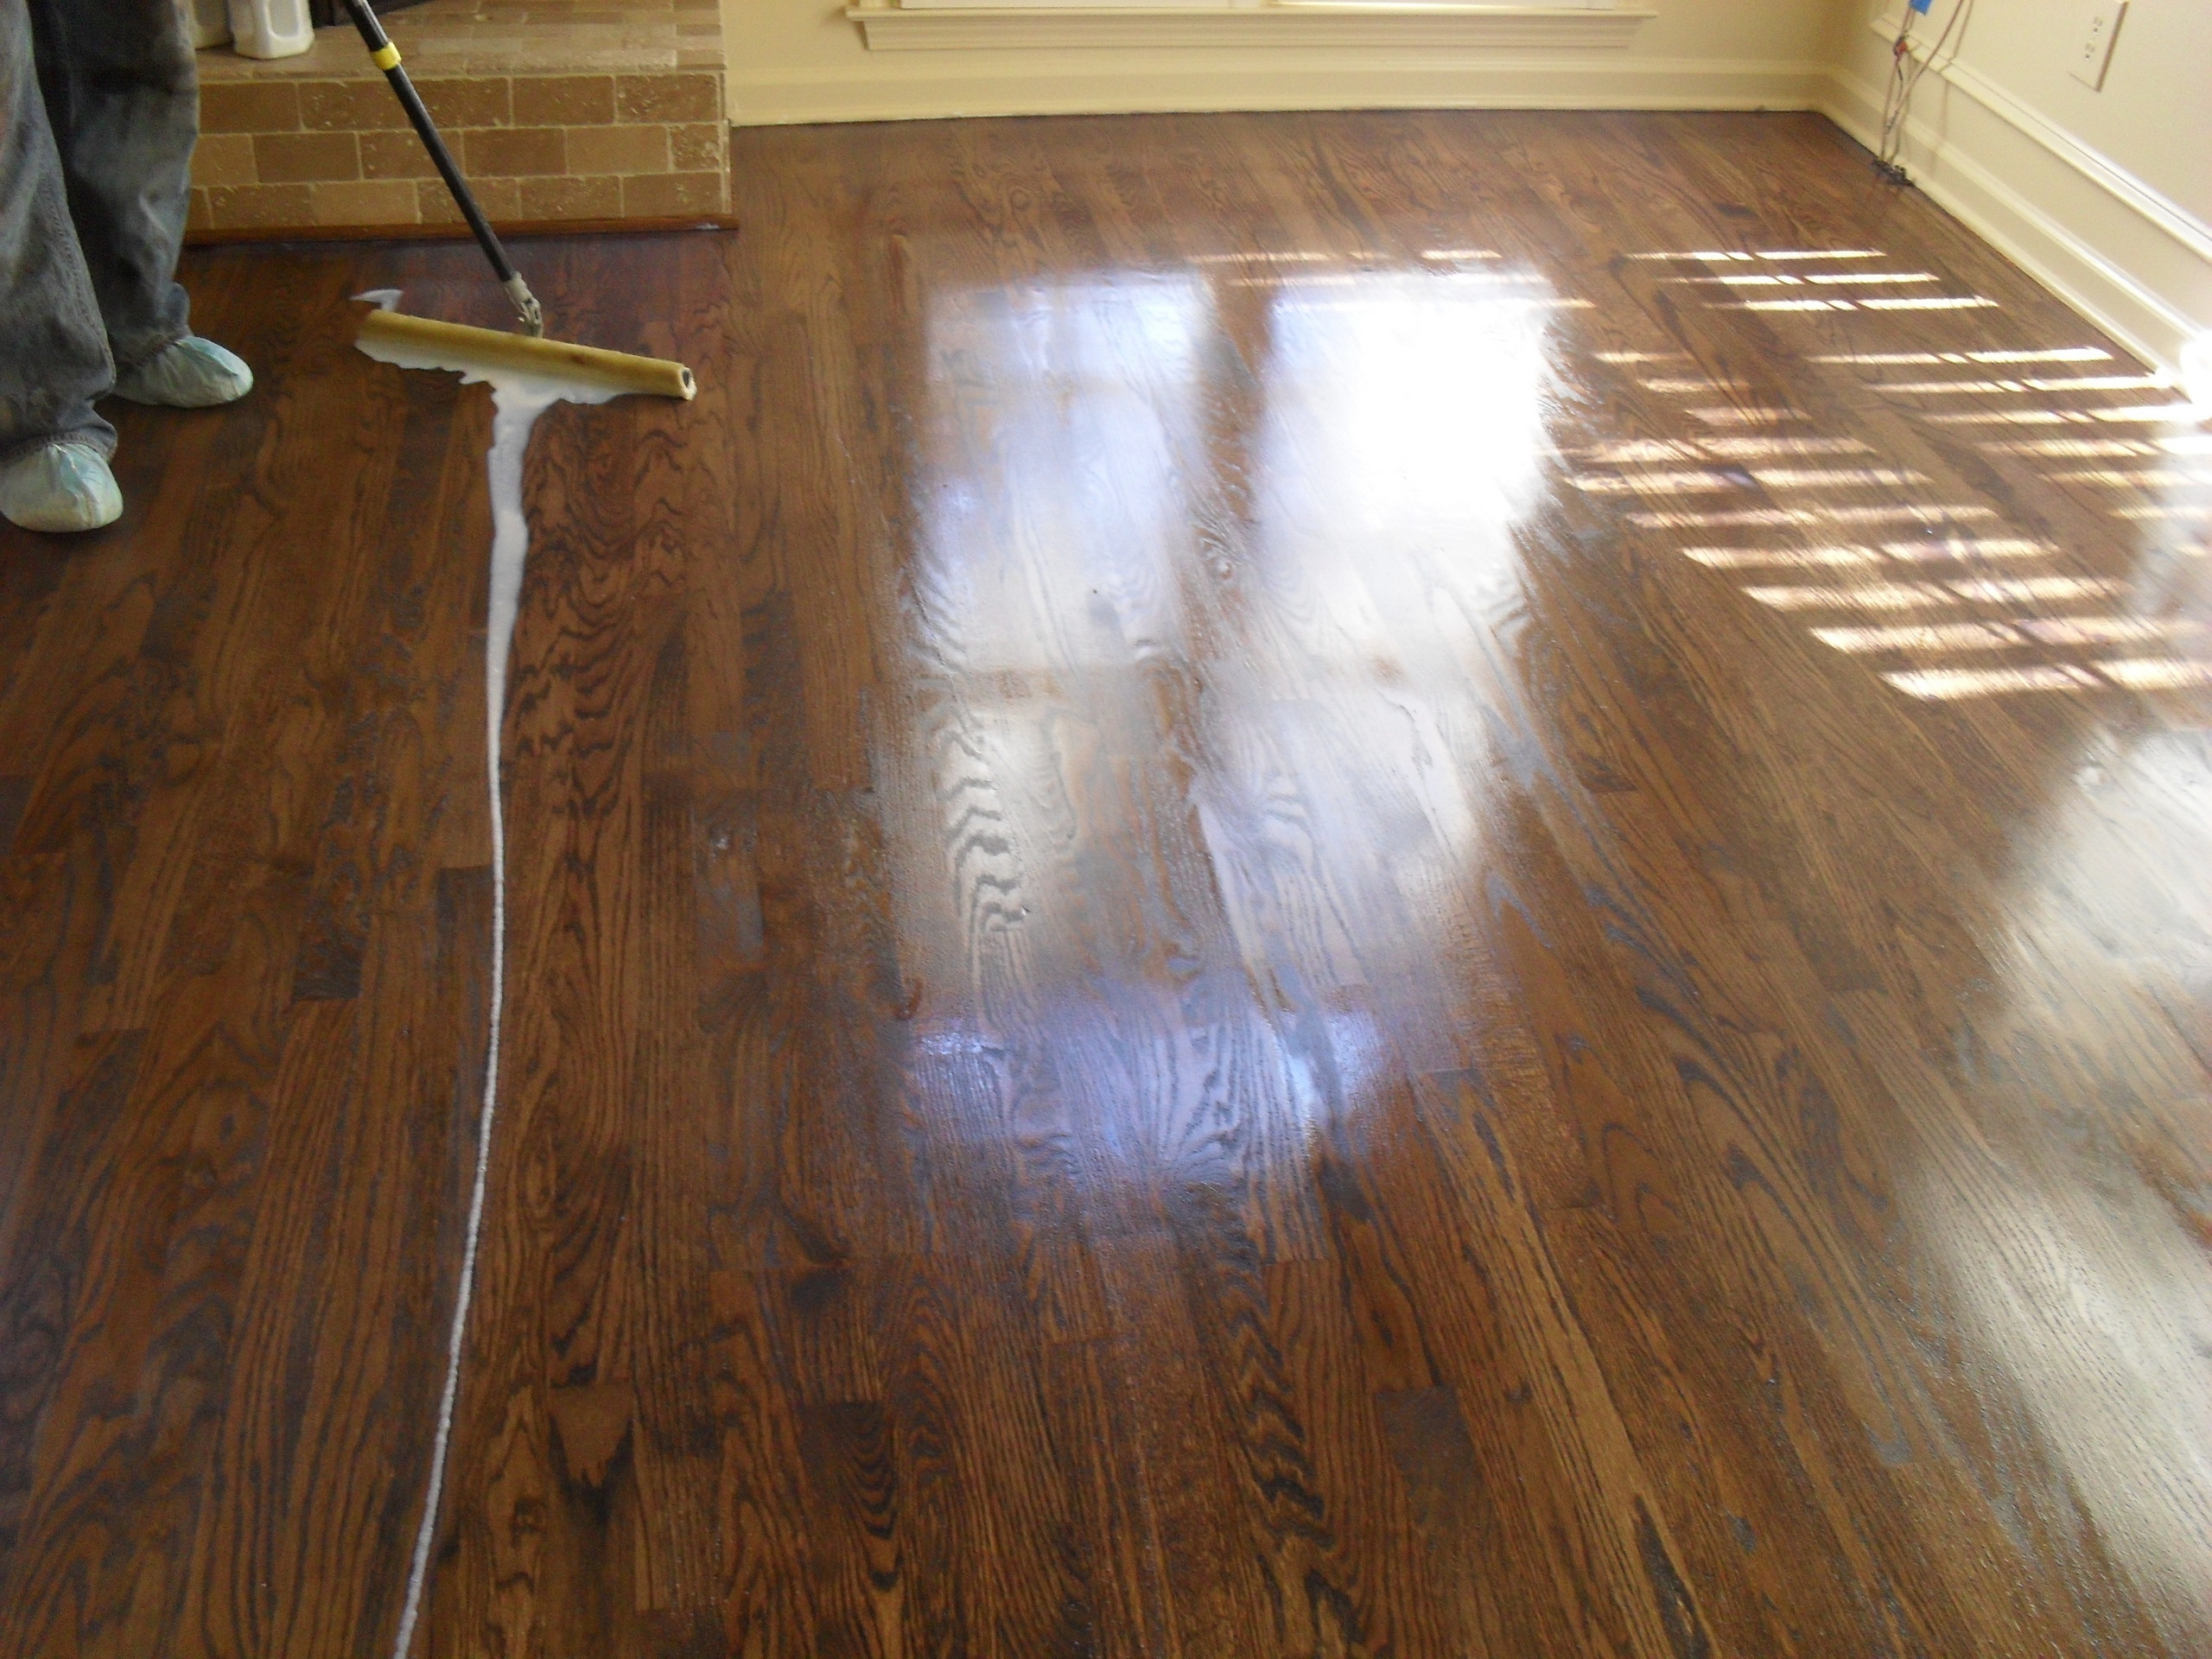 Wood Floors Images Coating Wood Floors Hd Wallpaper And Background Photos 18330603